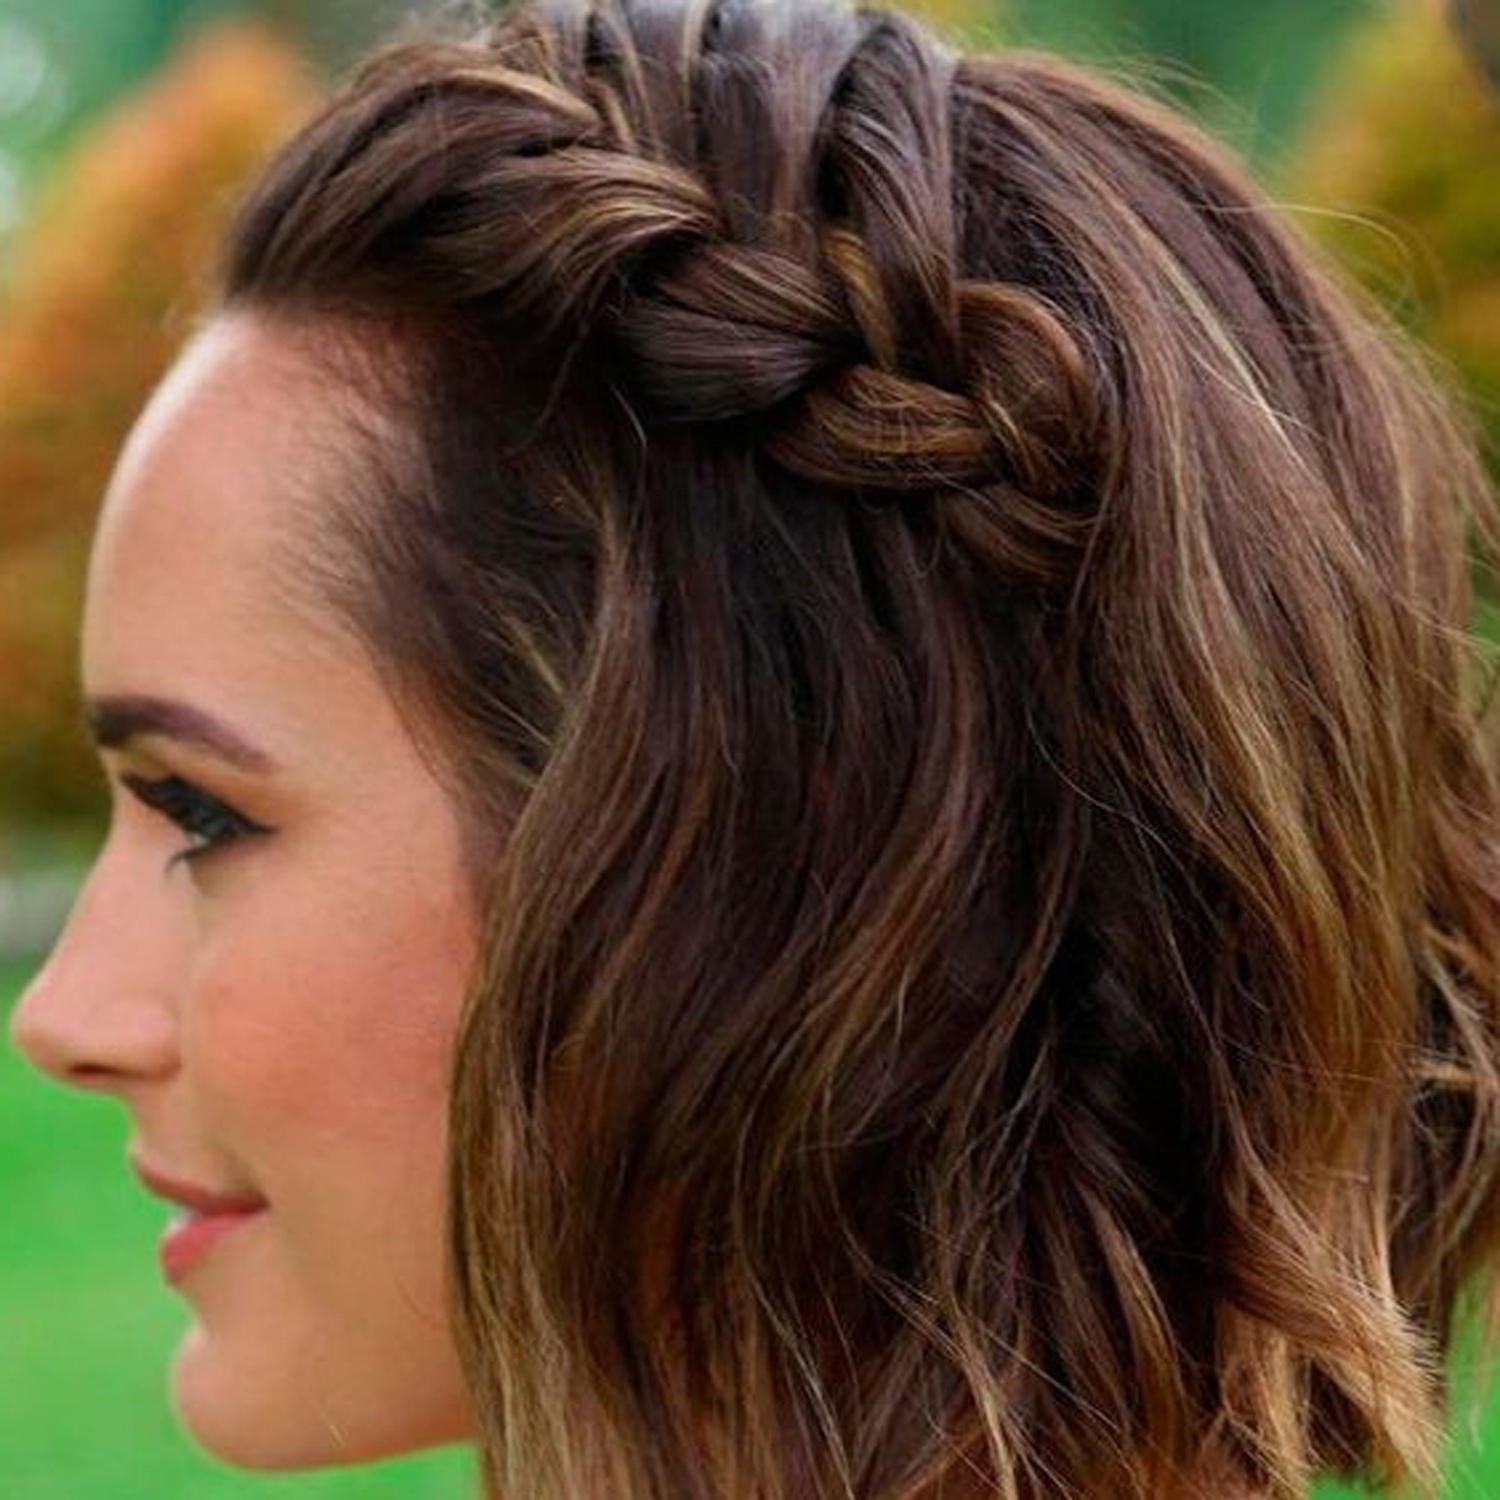 Beautyheaven Intended For Current Braided Lob Hairstyles (View 4 of 15)